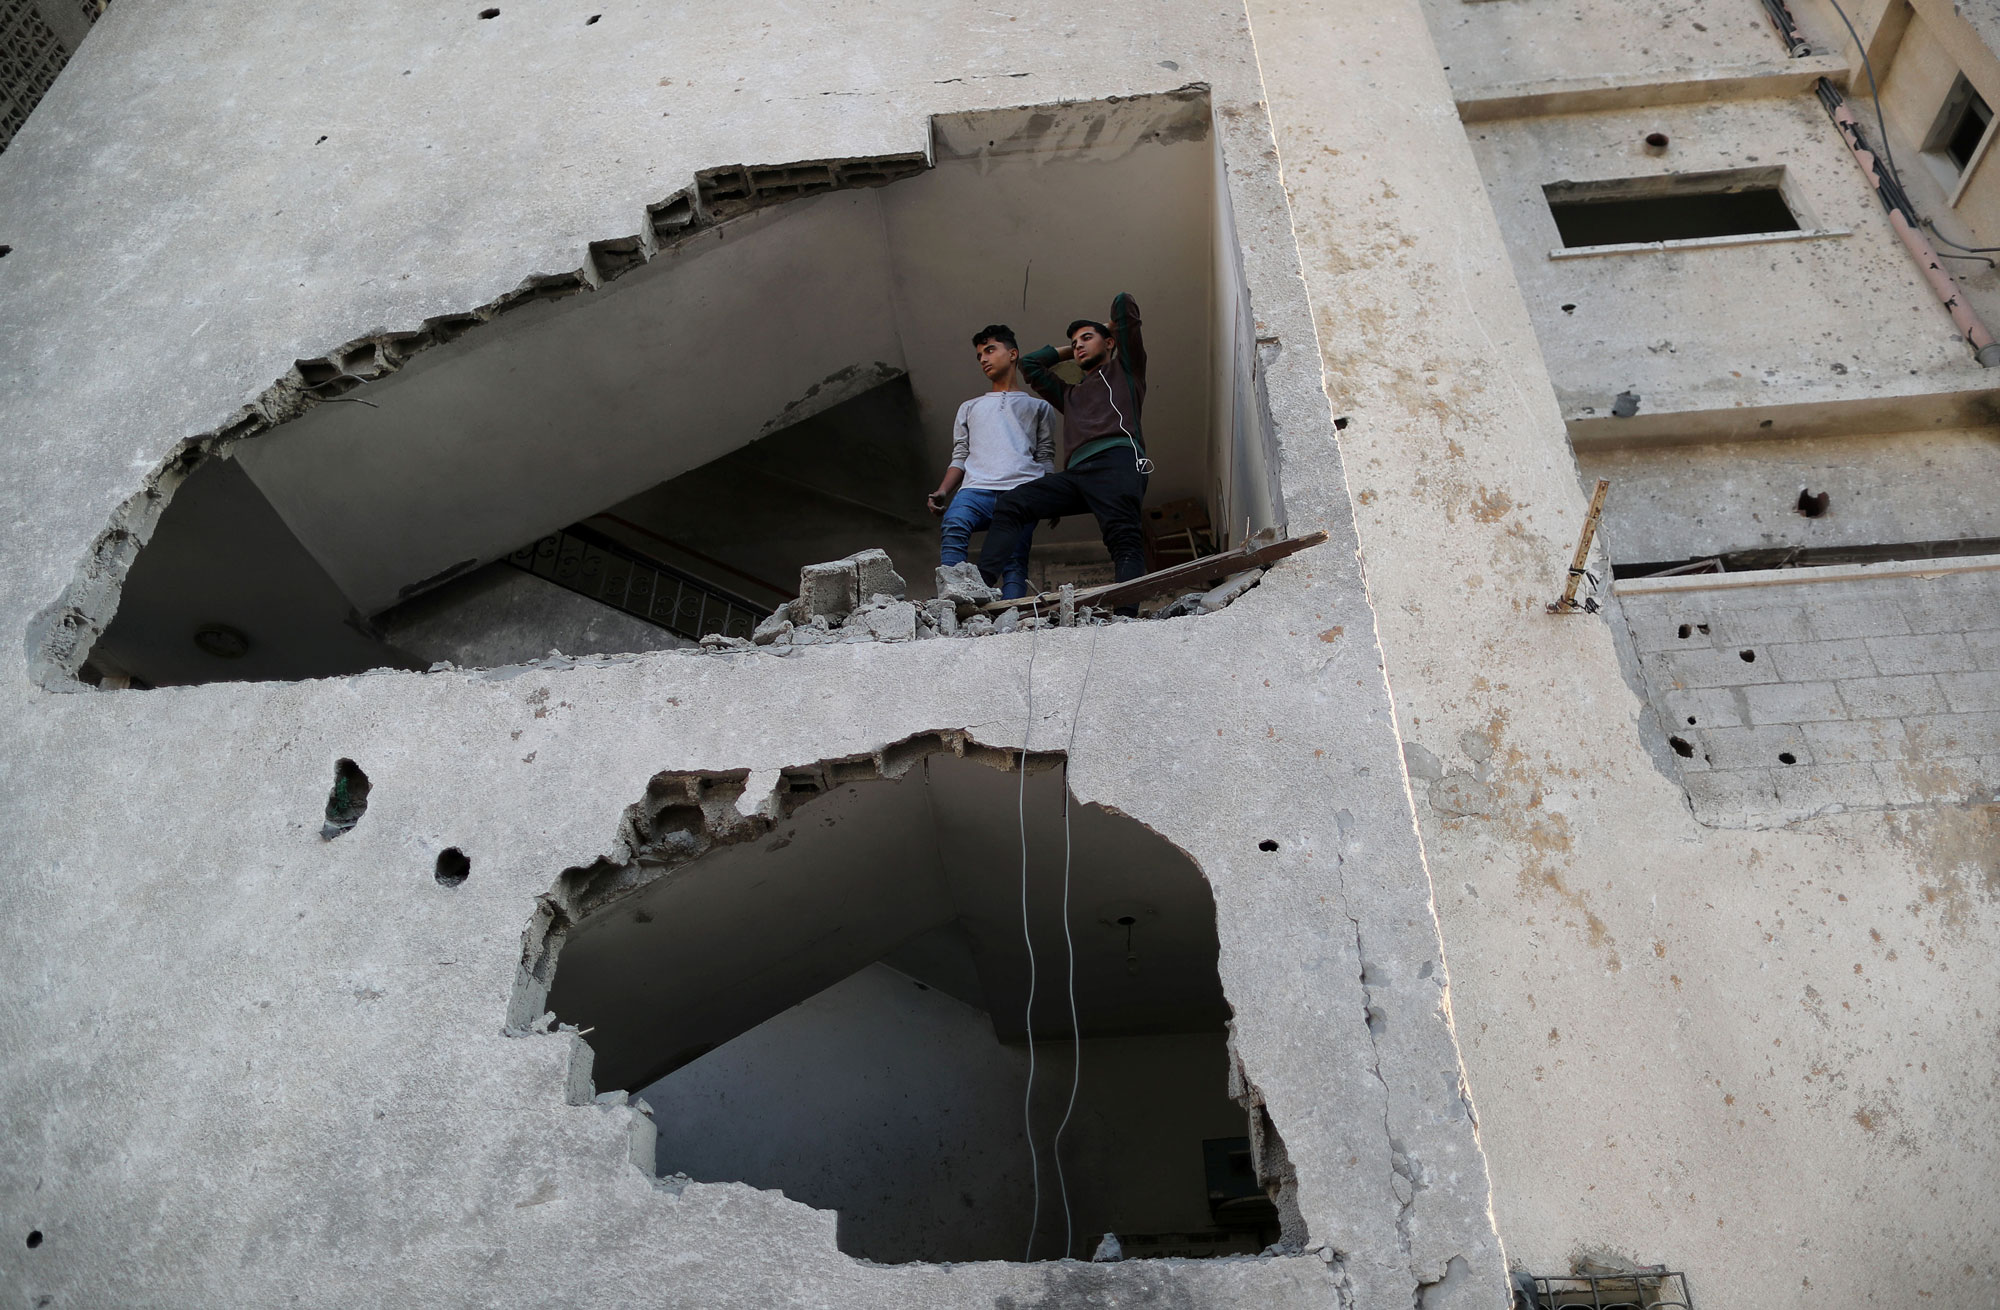 Palestinians look out of their house through a large hole in the wall created from an Israeli air strike.